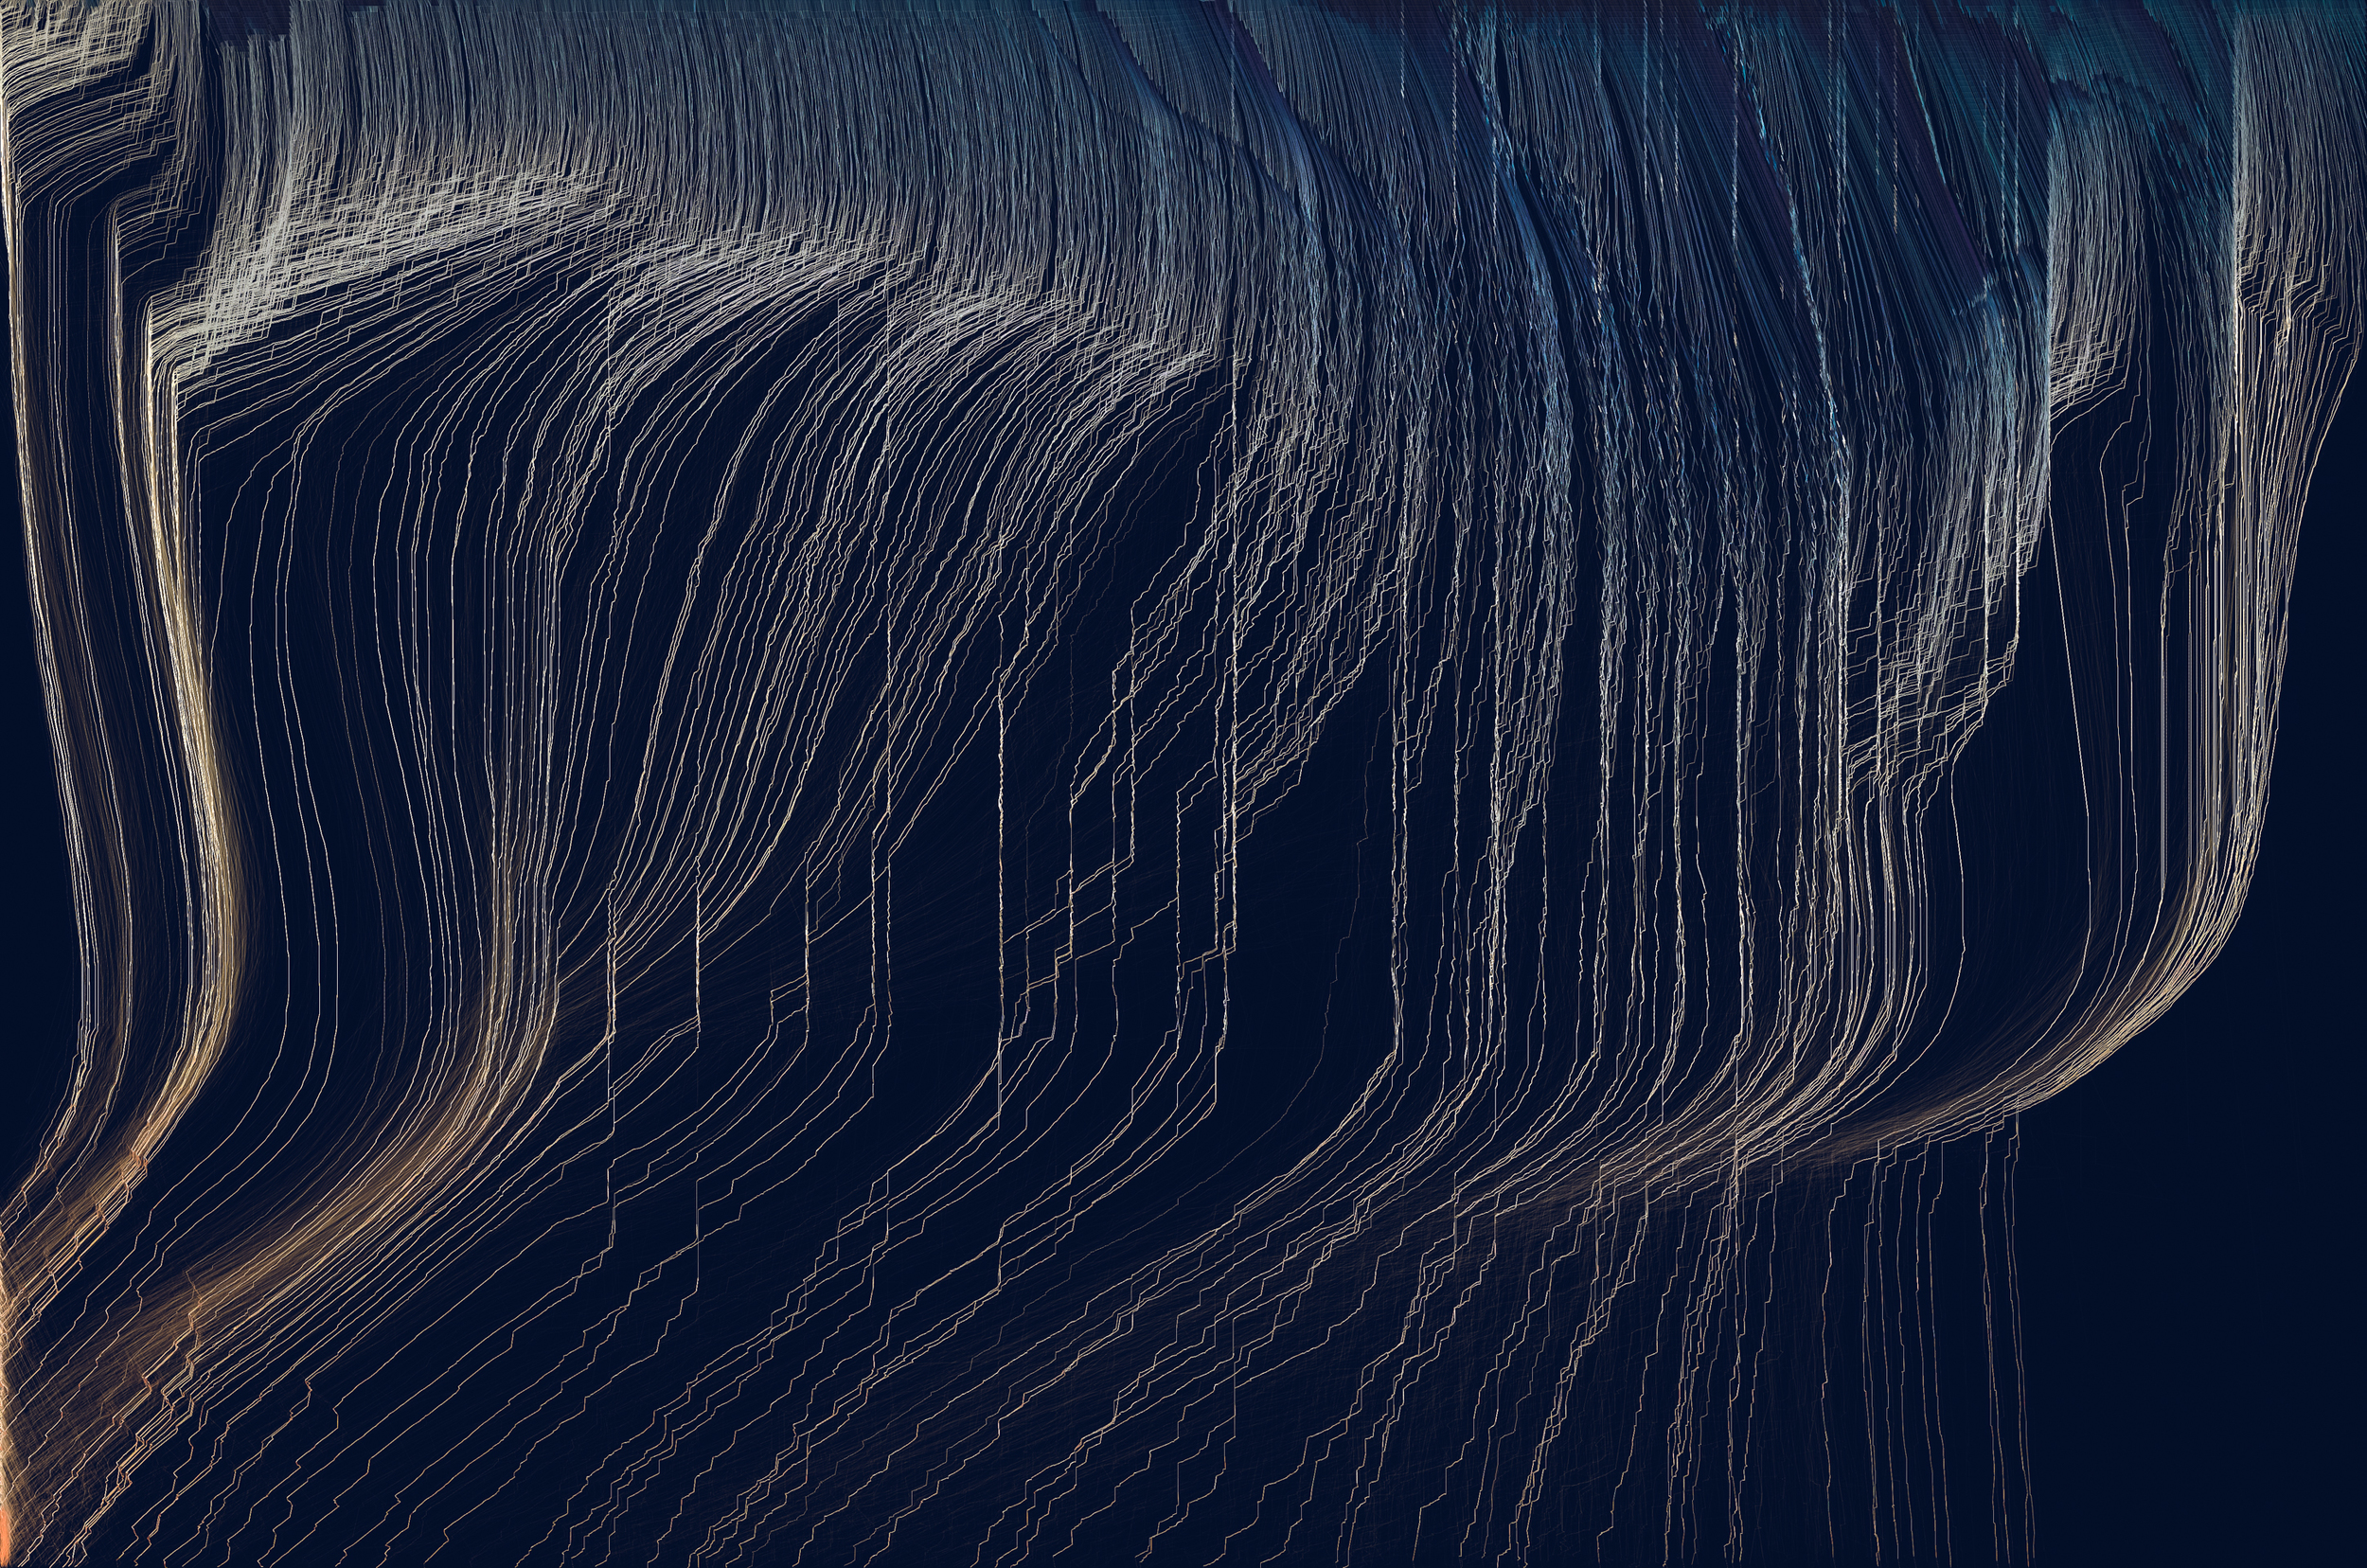 alban_guerry-suire_generative_drawing-001.jpg